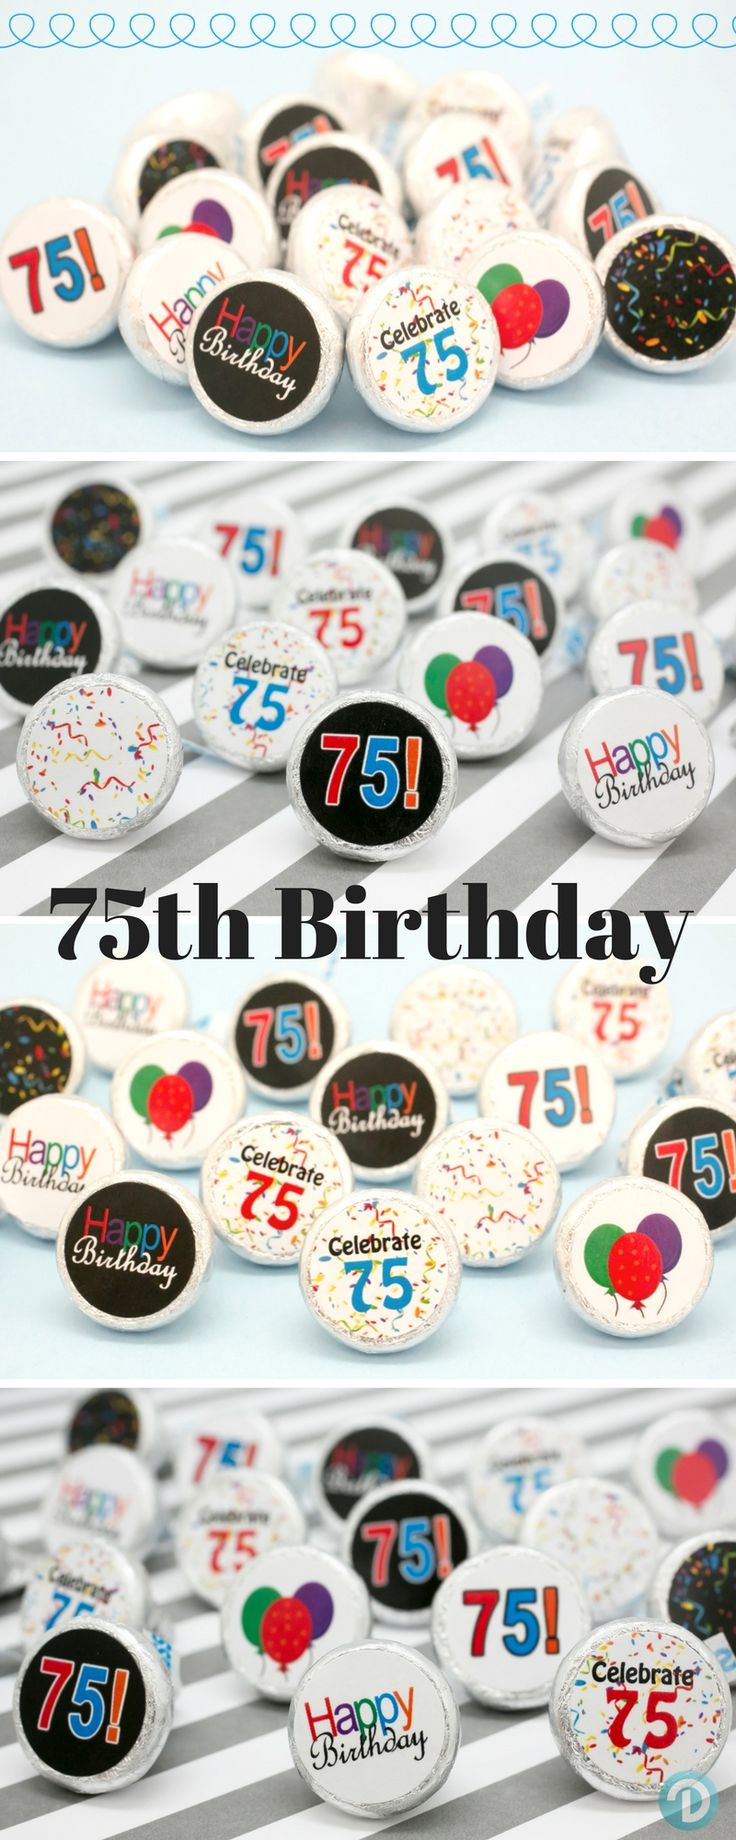 Best ideas about 75th Birthday Party Favors . Save or Pin Best 25 75th birthday decorations ideas on Pinterest Now.